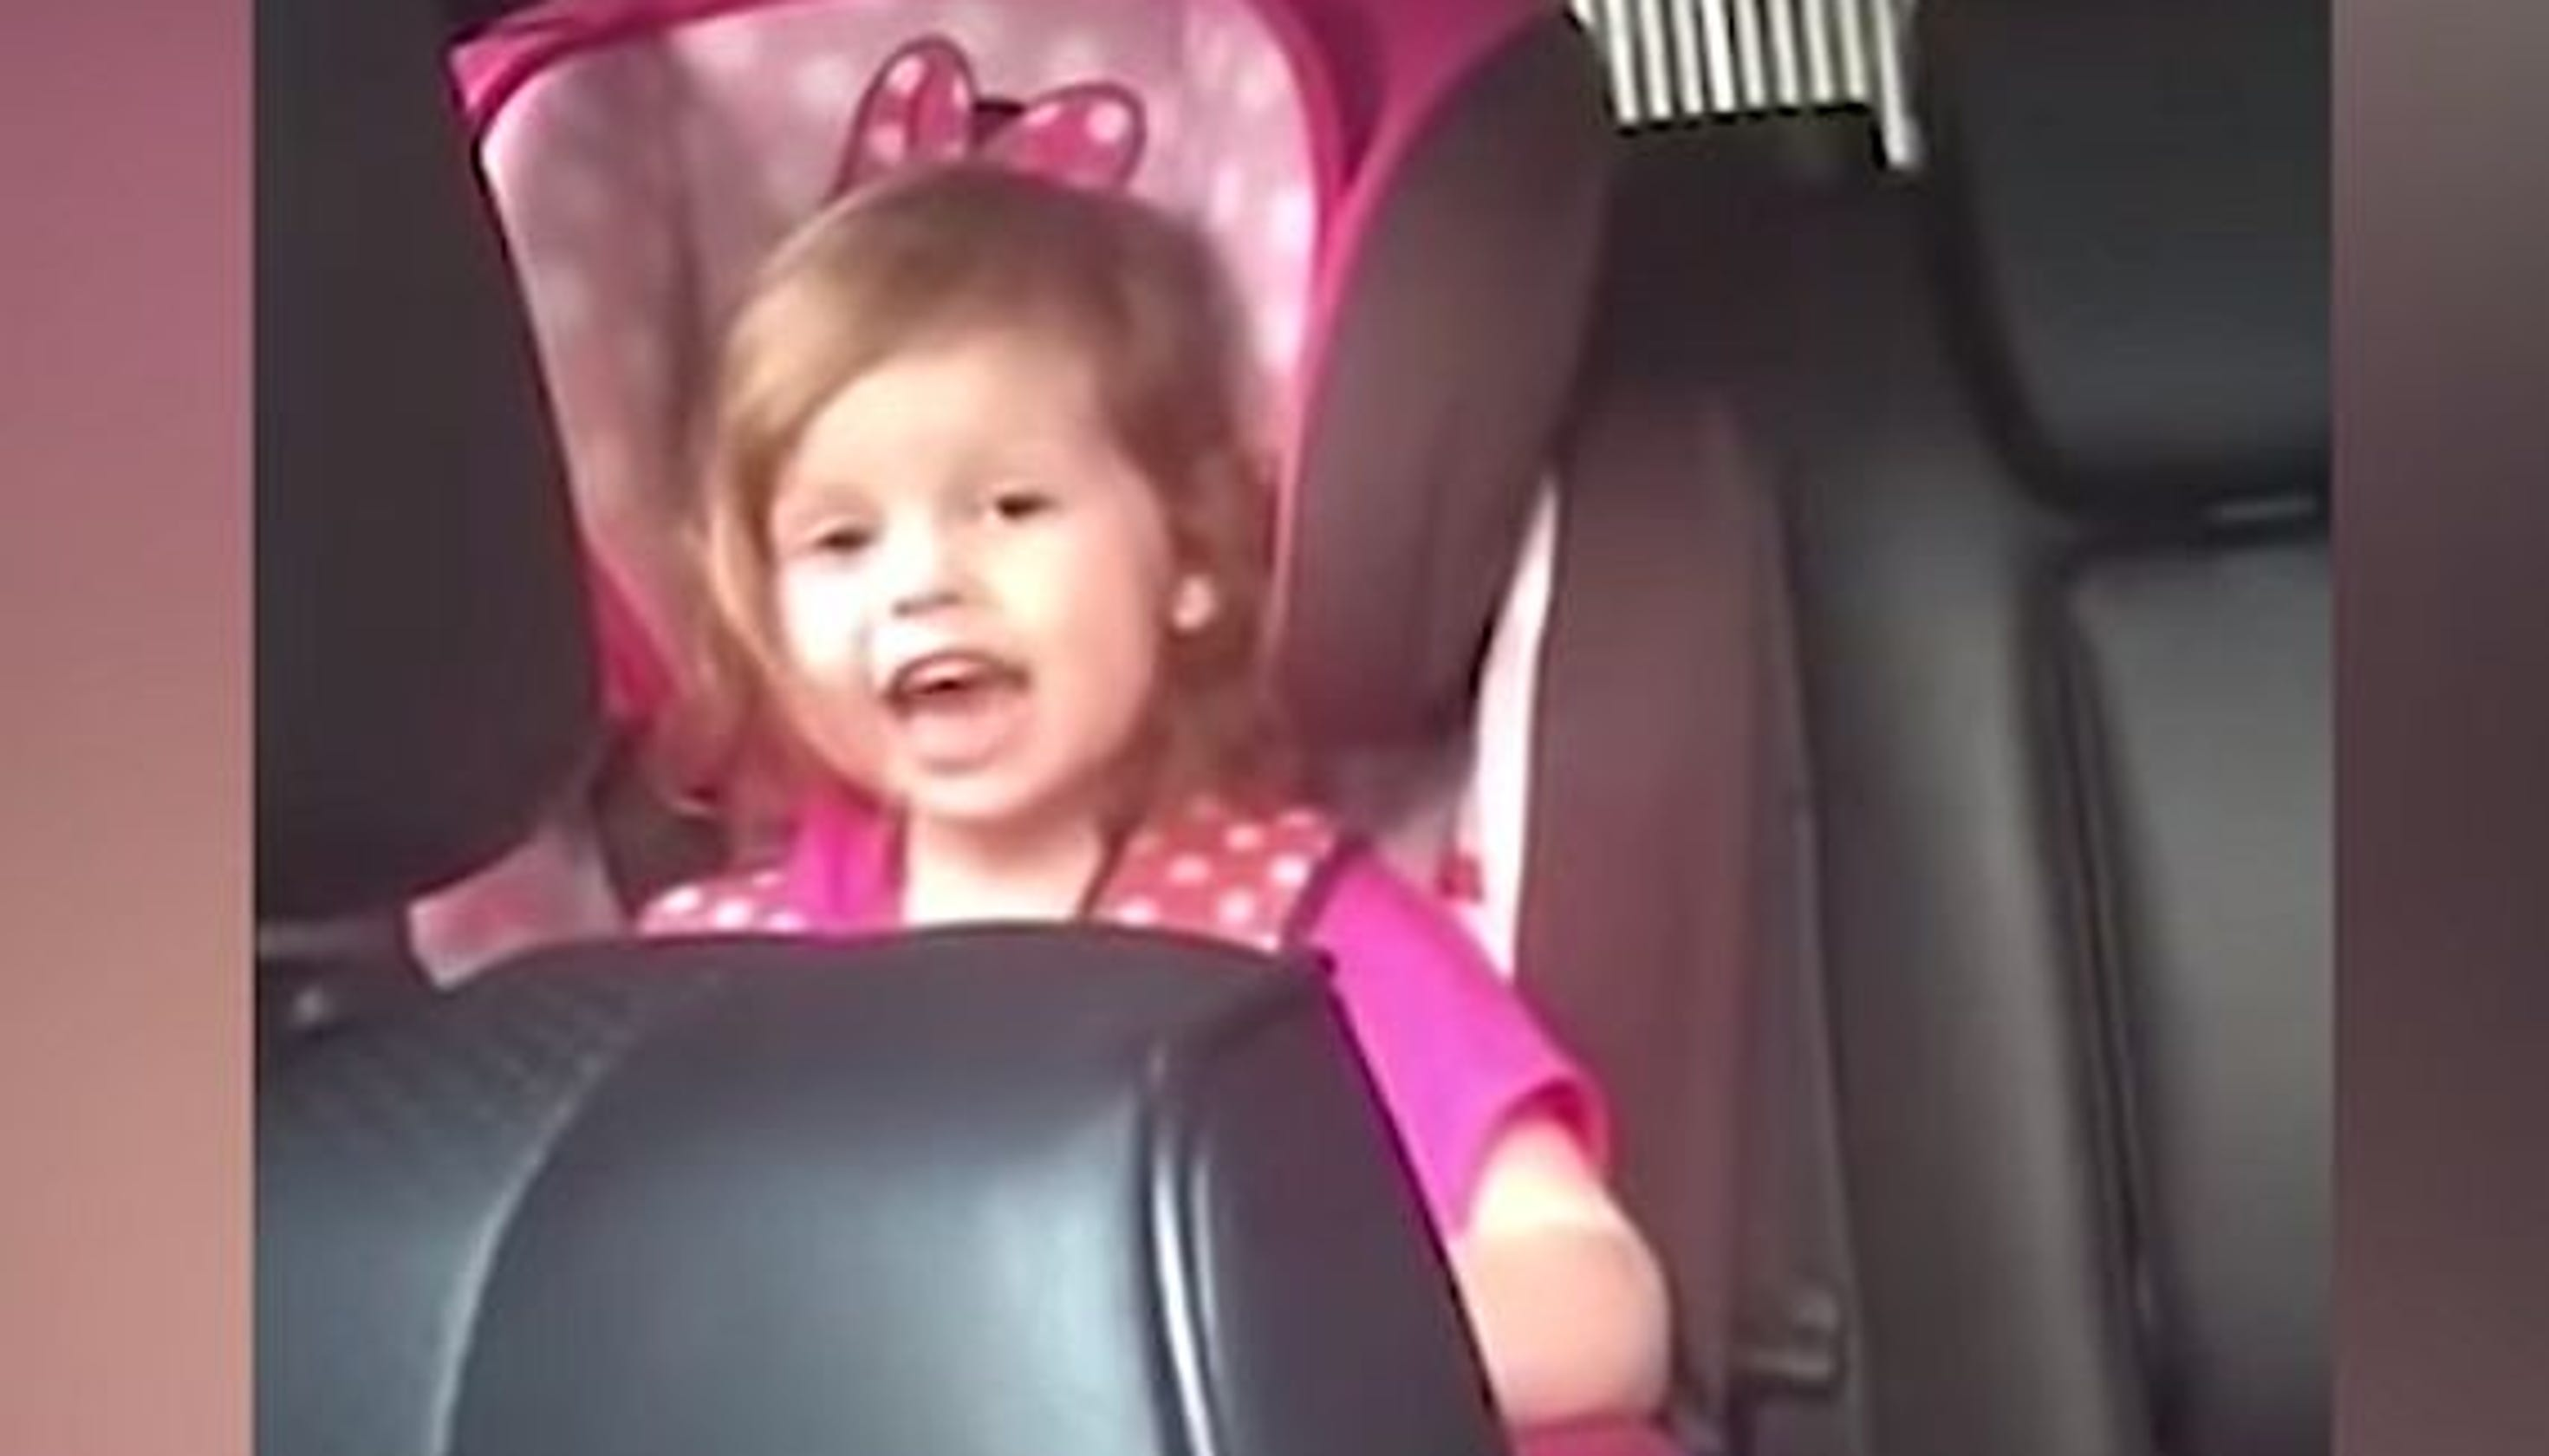 Cutie head-banging toddler rocks highs and lows of Queen's 'Bohemian Rhapsody'